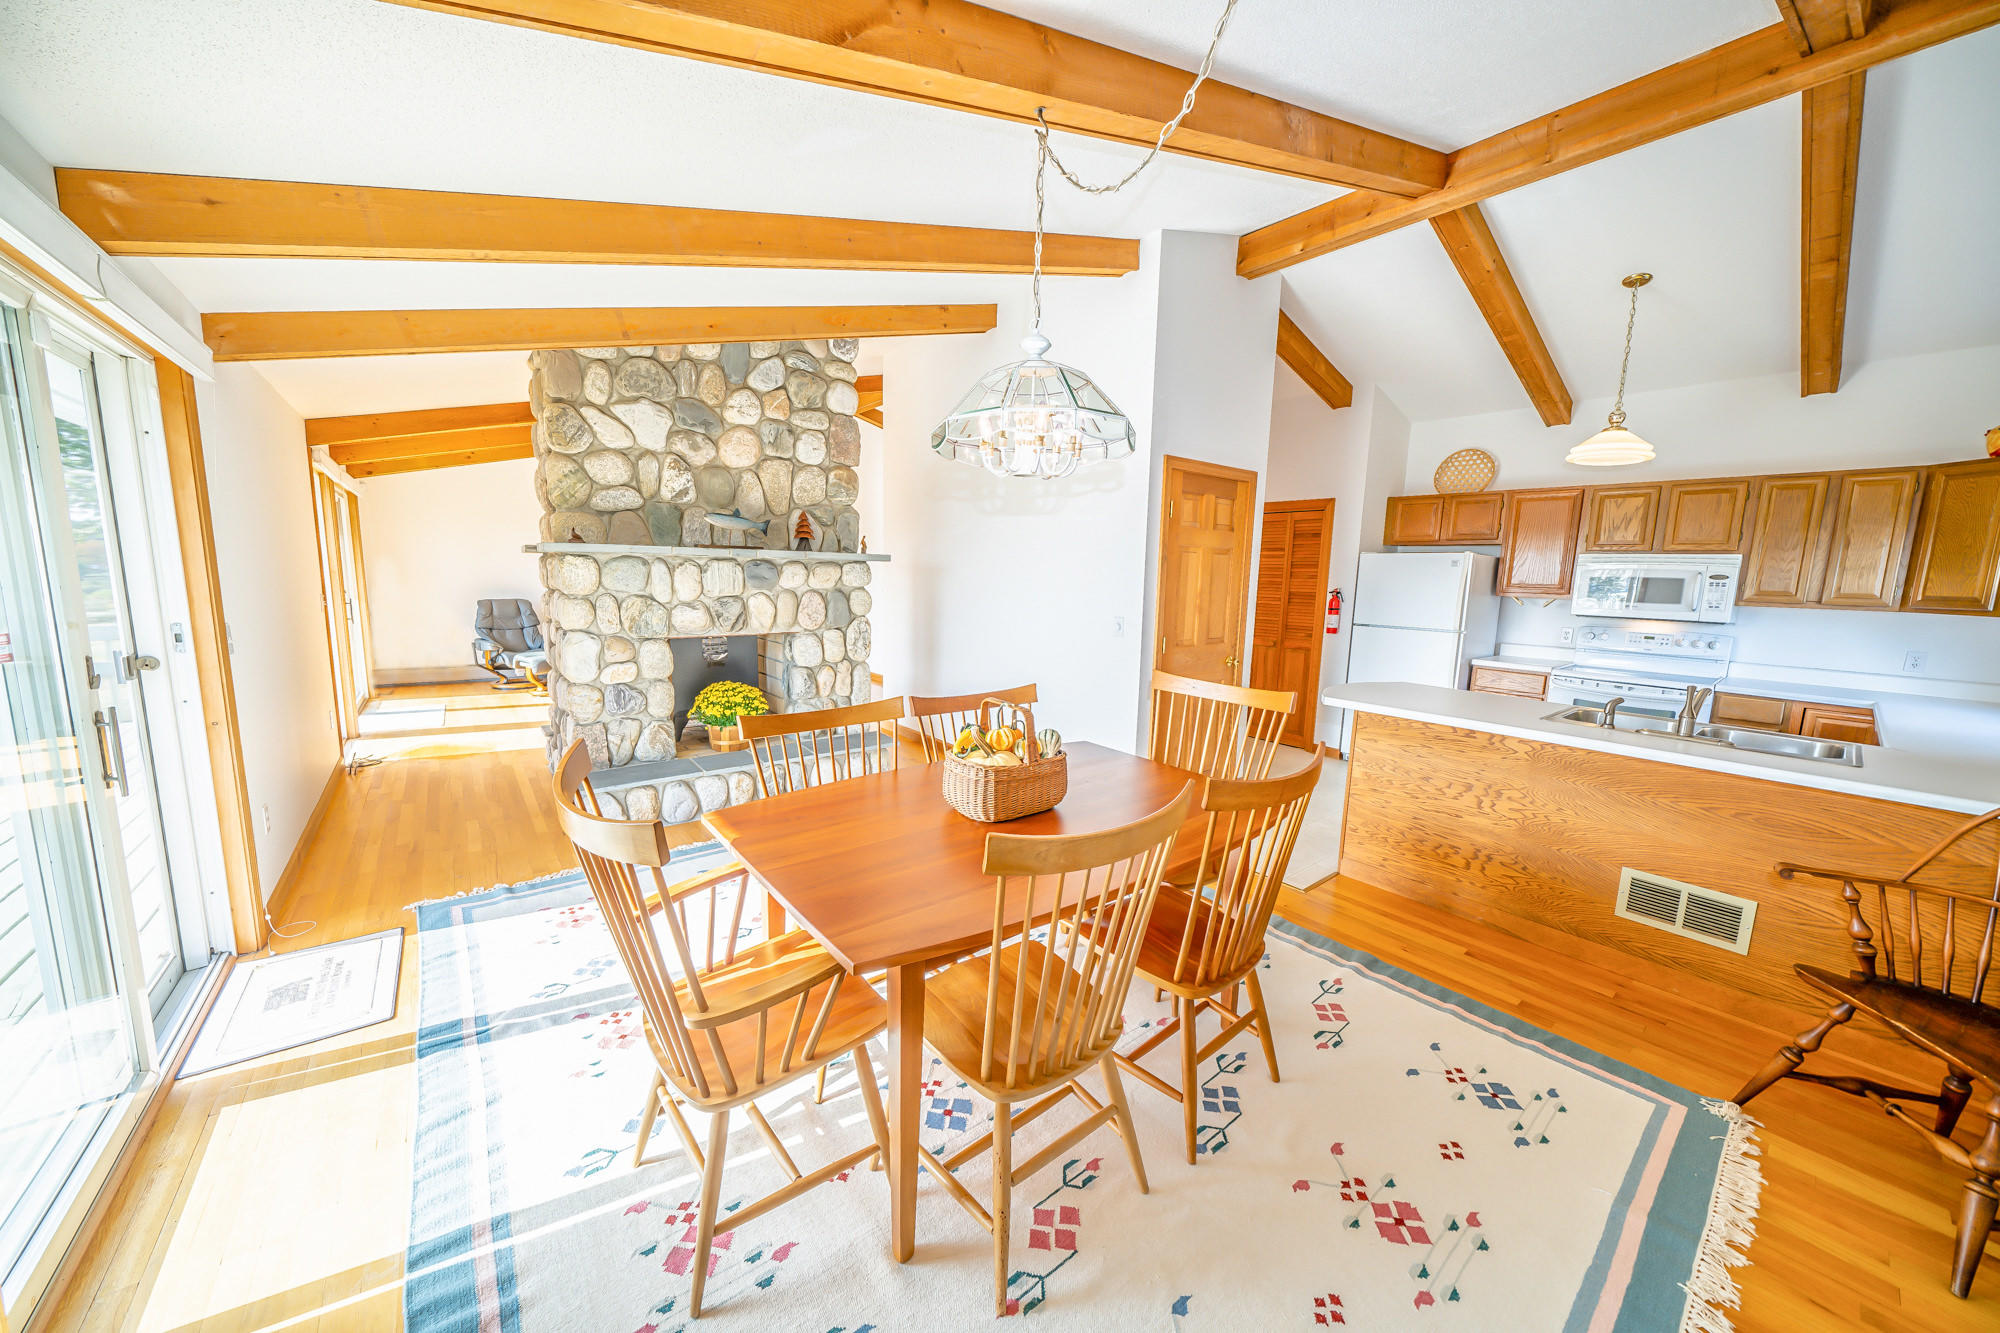 3-bedroom contemporary ranch offers a stone fireplace w/a wood-burning insert, exposed beams, hardwood floors, a spacious, water-view deck, a massive basement  with a work bench, 2 garages, a security system and an on-demand whole house generator.